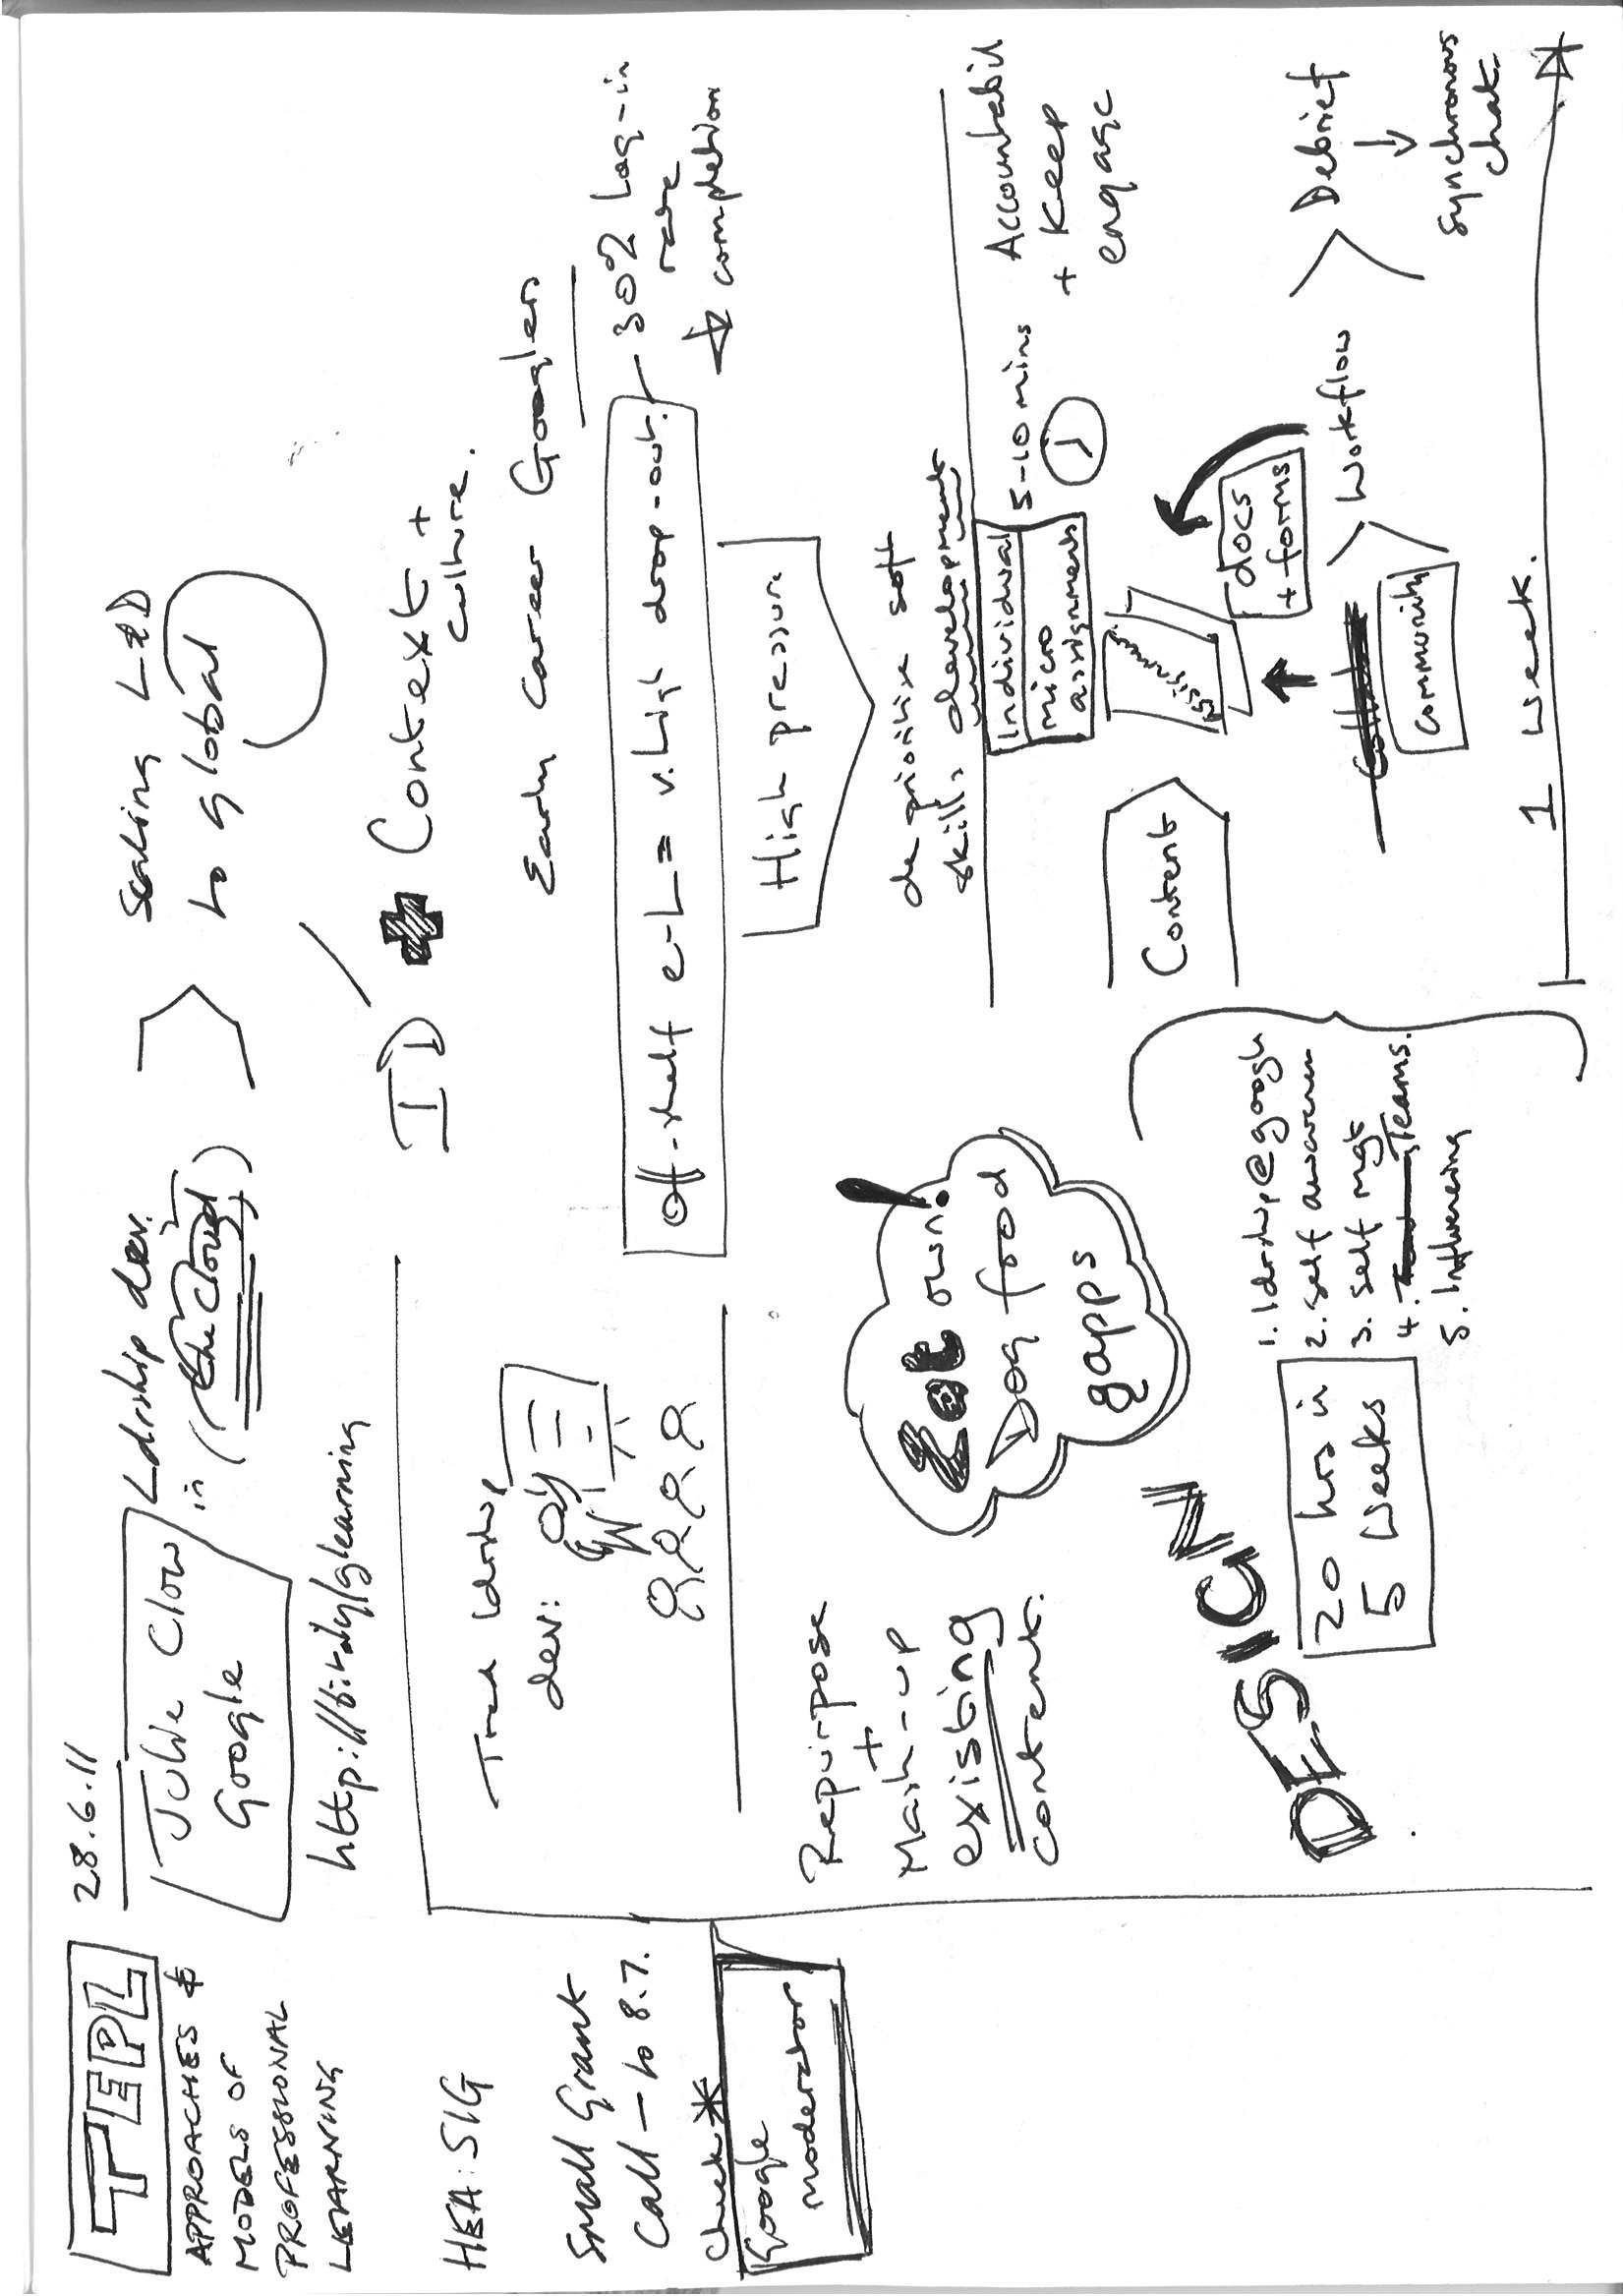 Sketchnotes: leadership development in the cloud, a Google case study